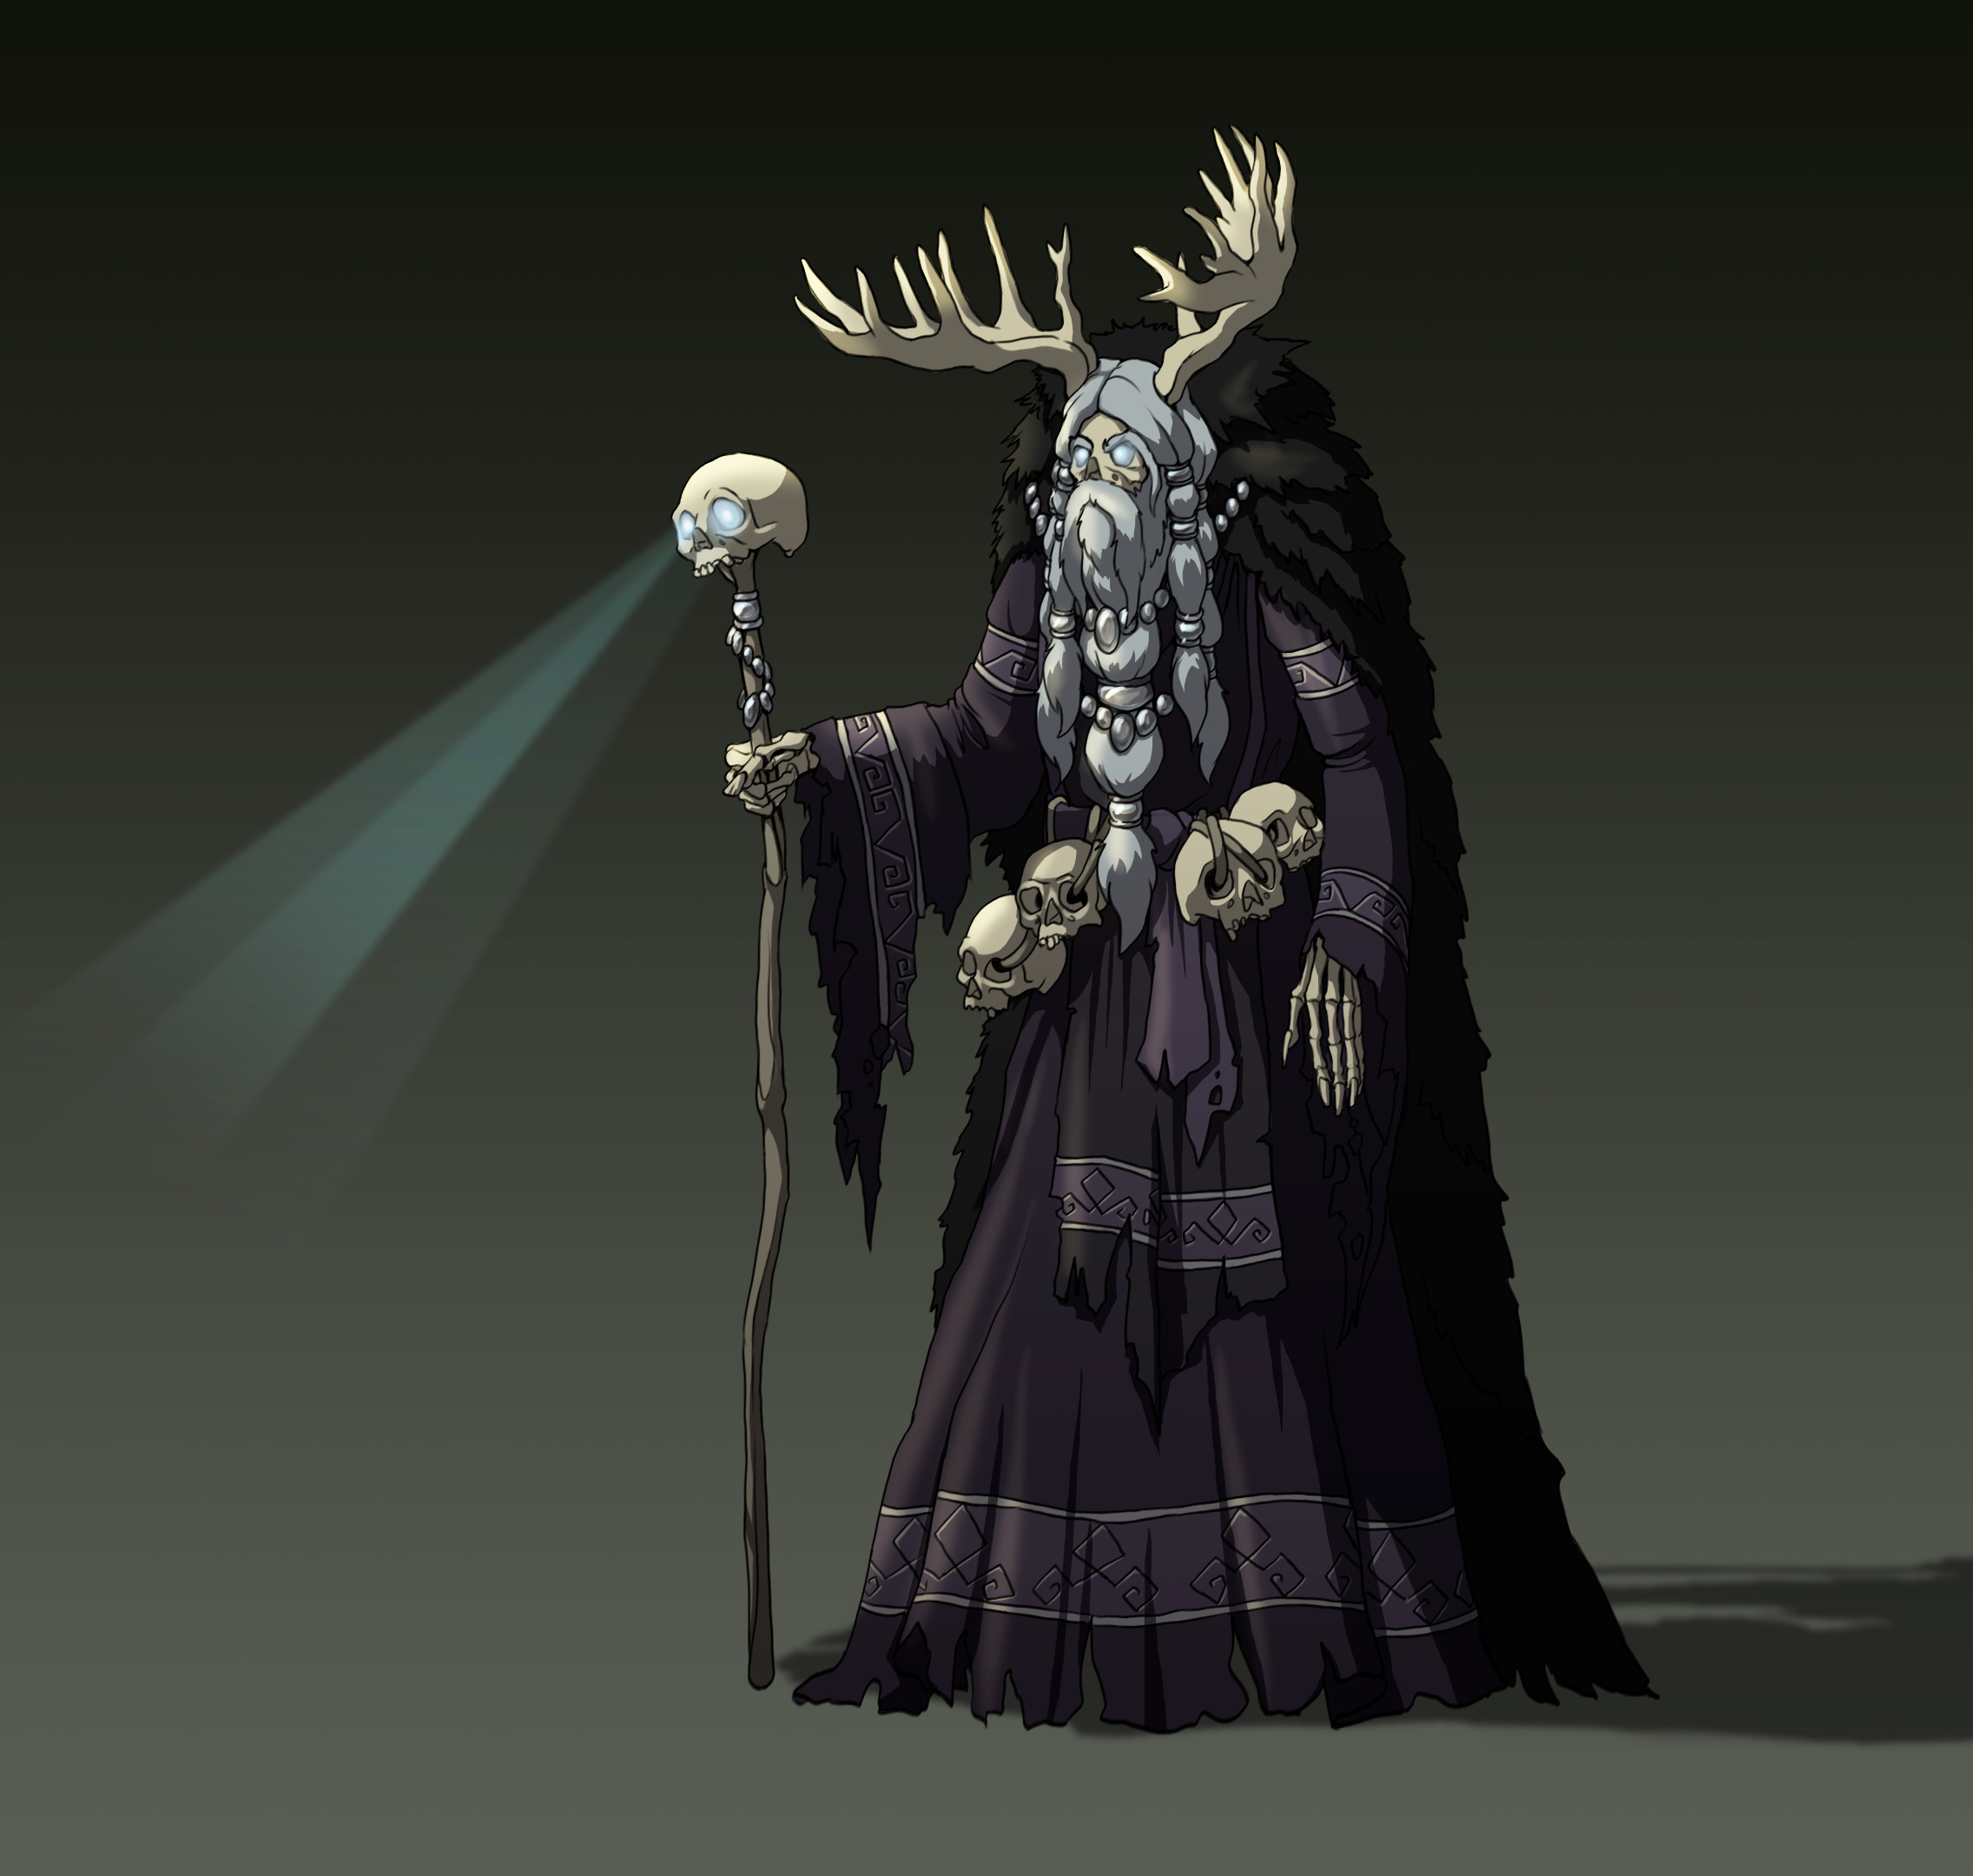 Karachun, the spirit of frost and dead by cold.